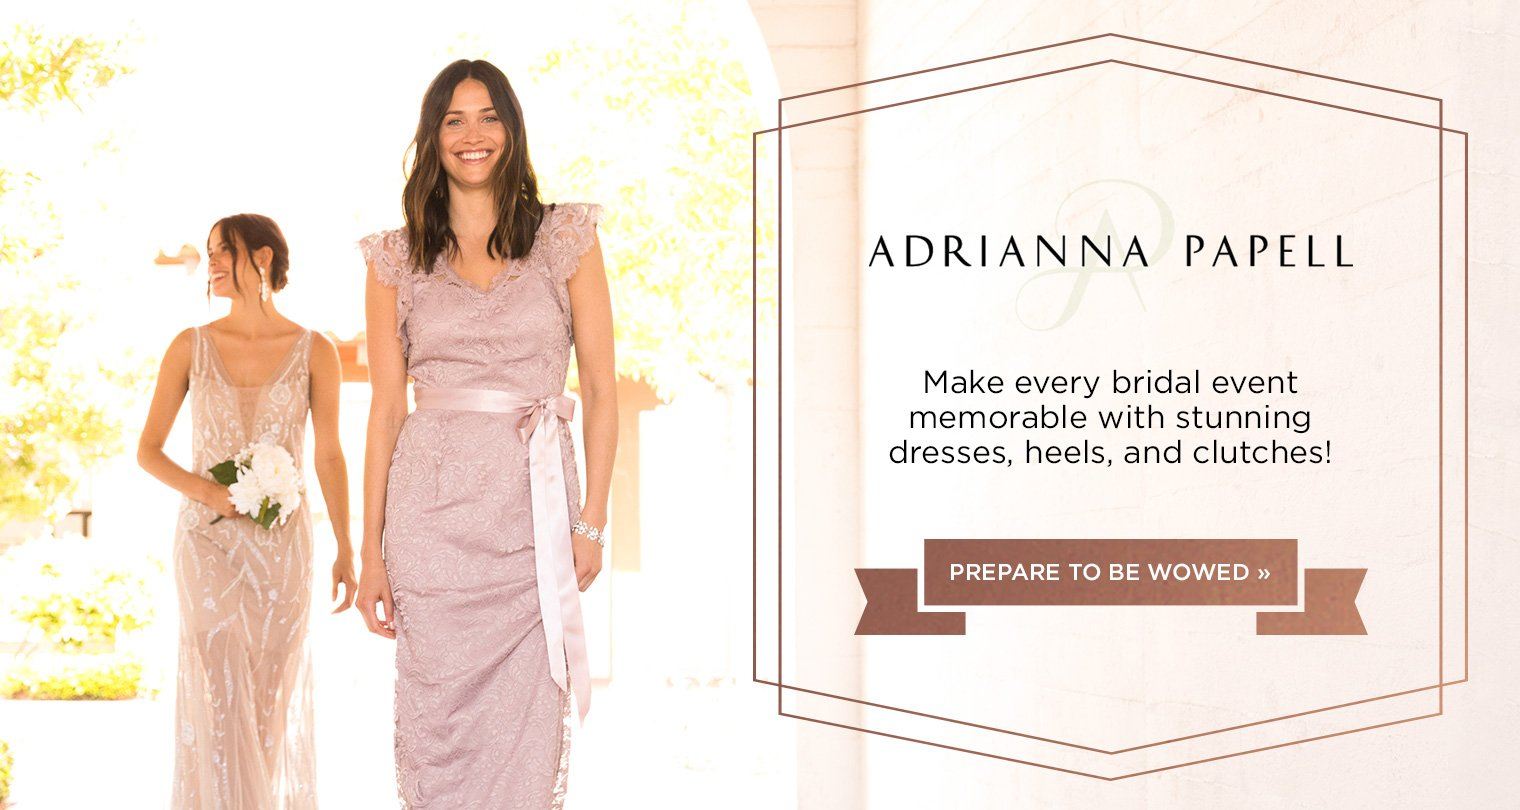 Adrianna Papell. Make every bridal event memorable with stunning dresses, heels, and clutches! Prepare to be wowed.